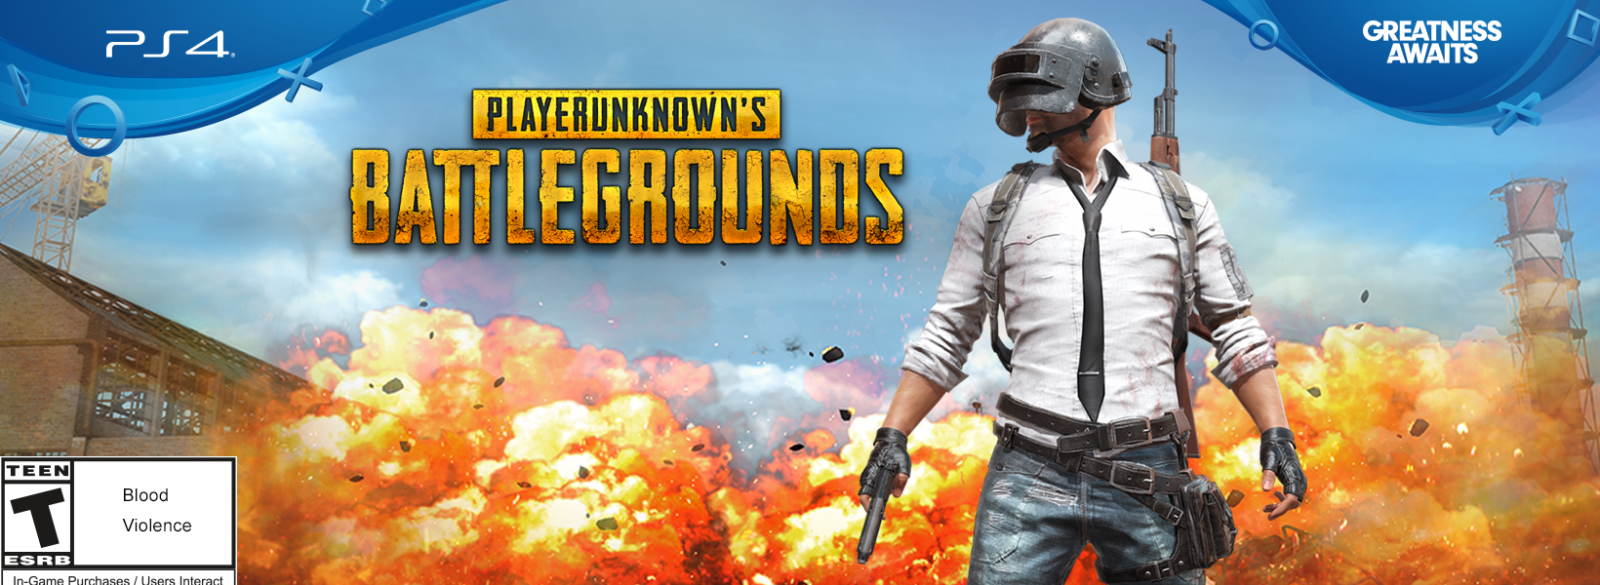 PUBG Officially Releases For PlayStation 4 On December 7th